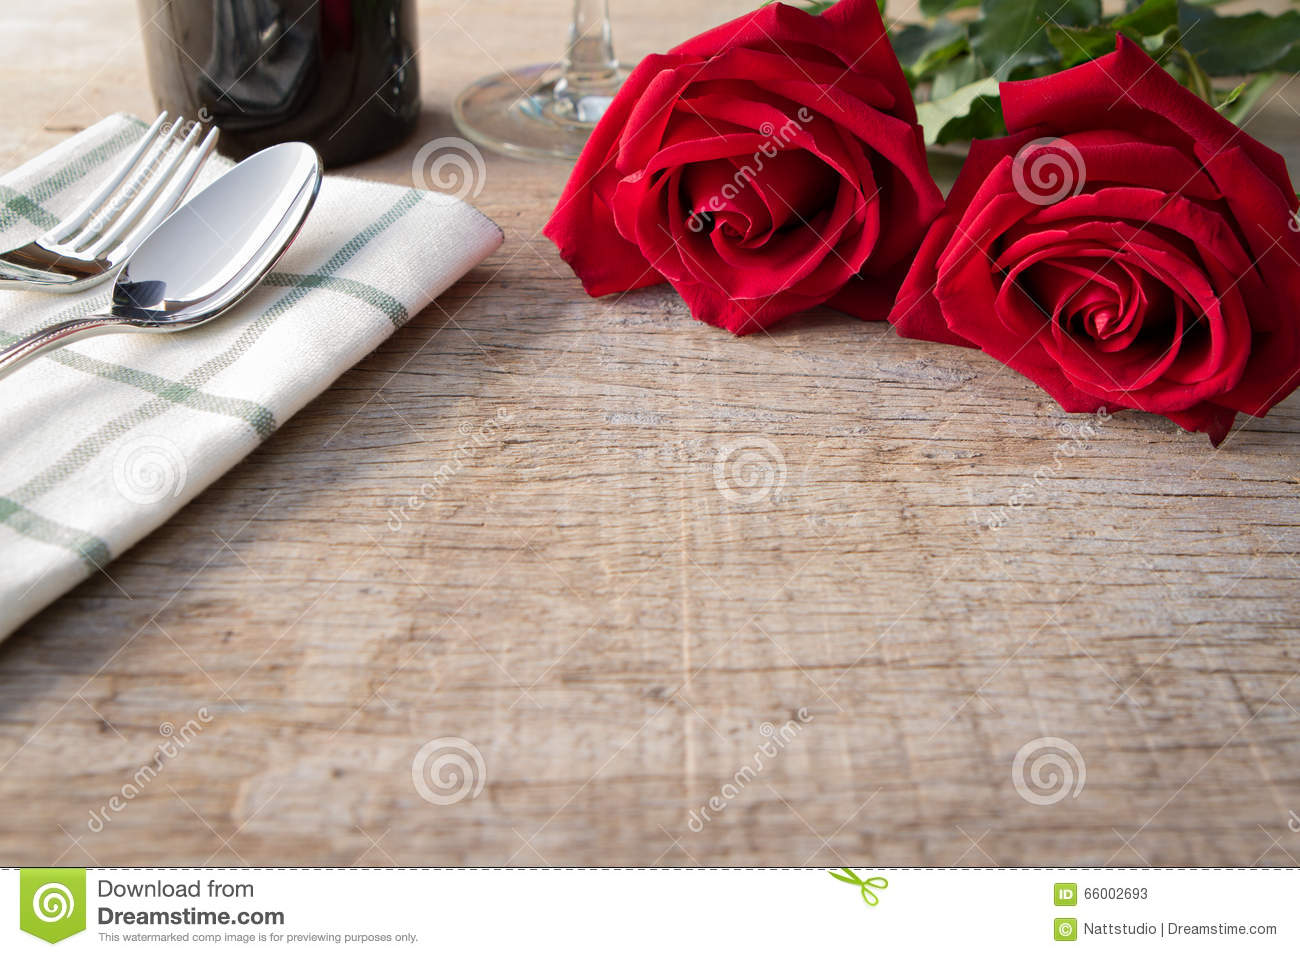 Red roses on dining table. Valentine s Day, anniversary etc.